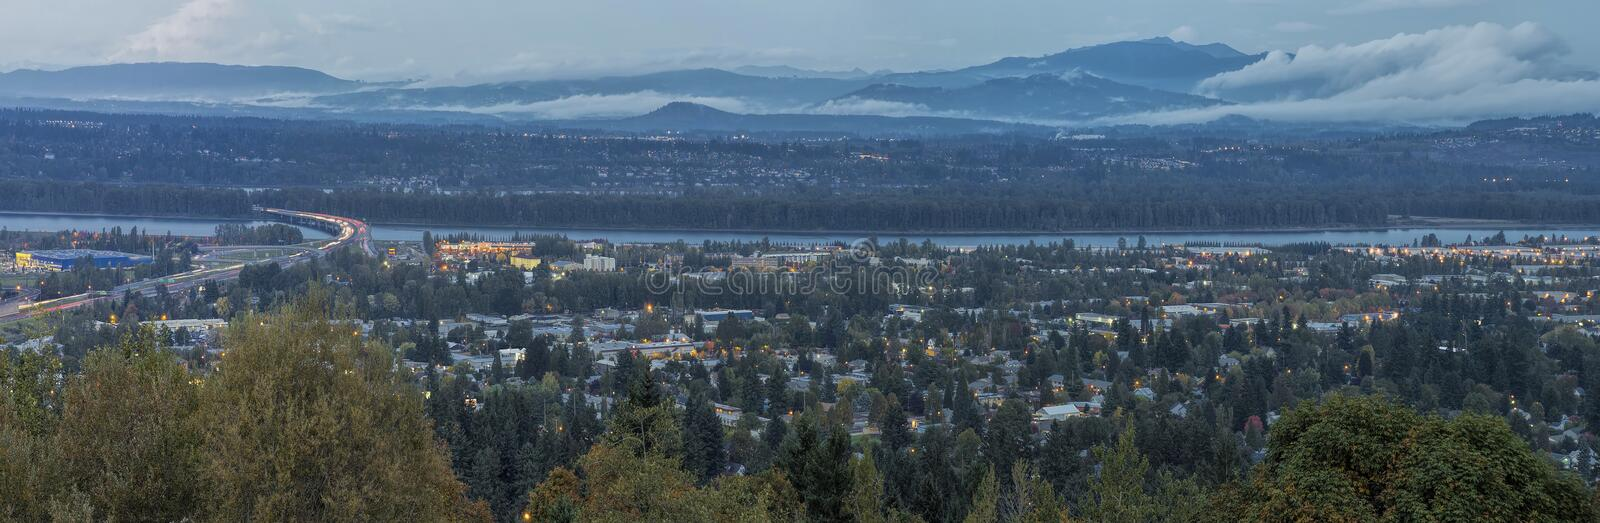 Panoramic View of Blue Hour Oregon Washington States. Panoramic View of Oregon and Washington States Divided by Columbia River at Evening Blue Hour stock images